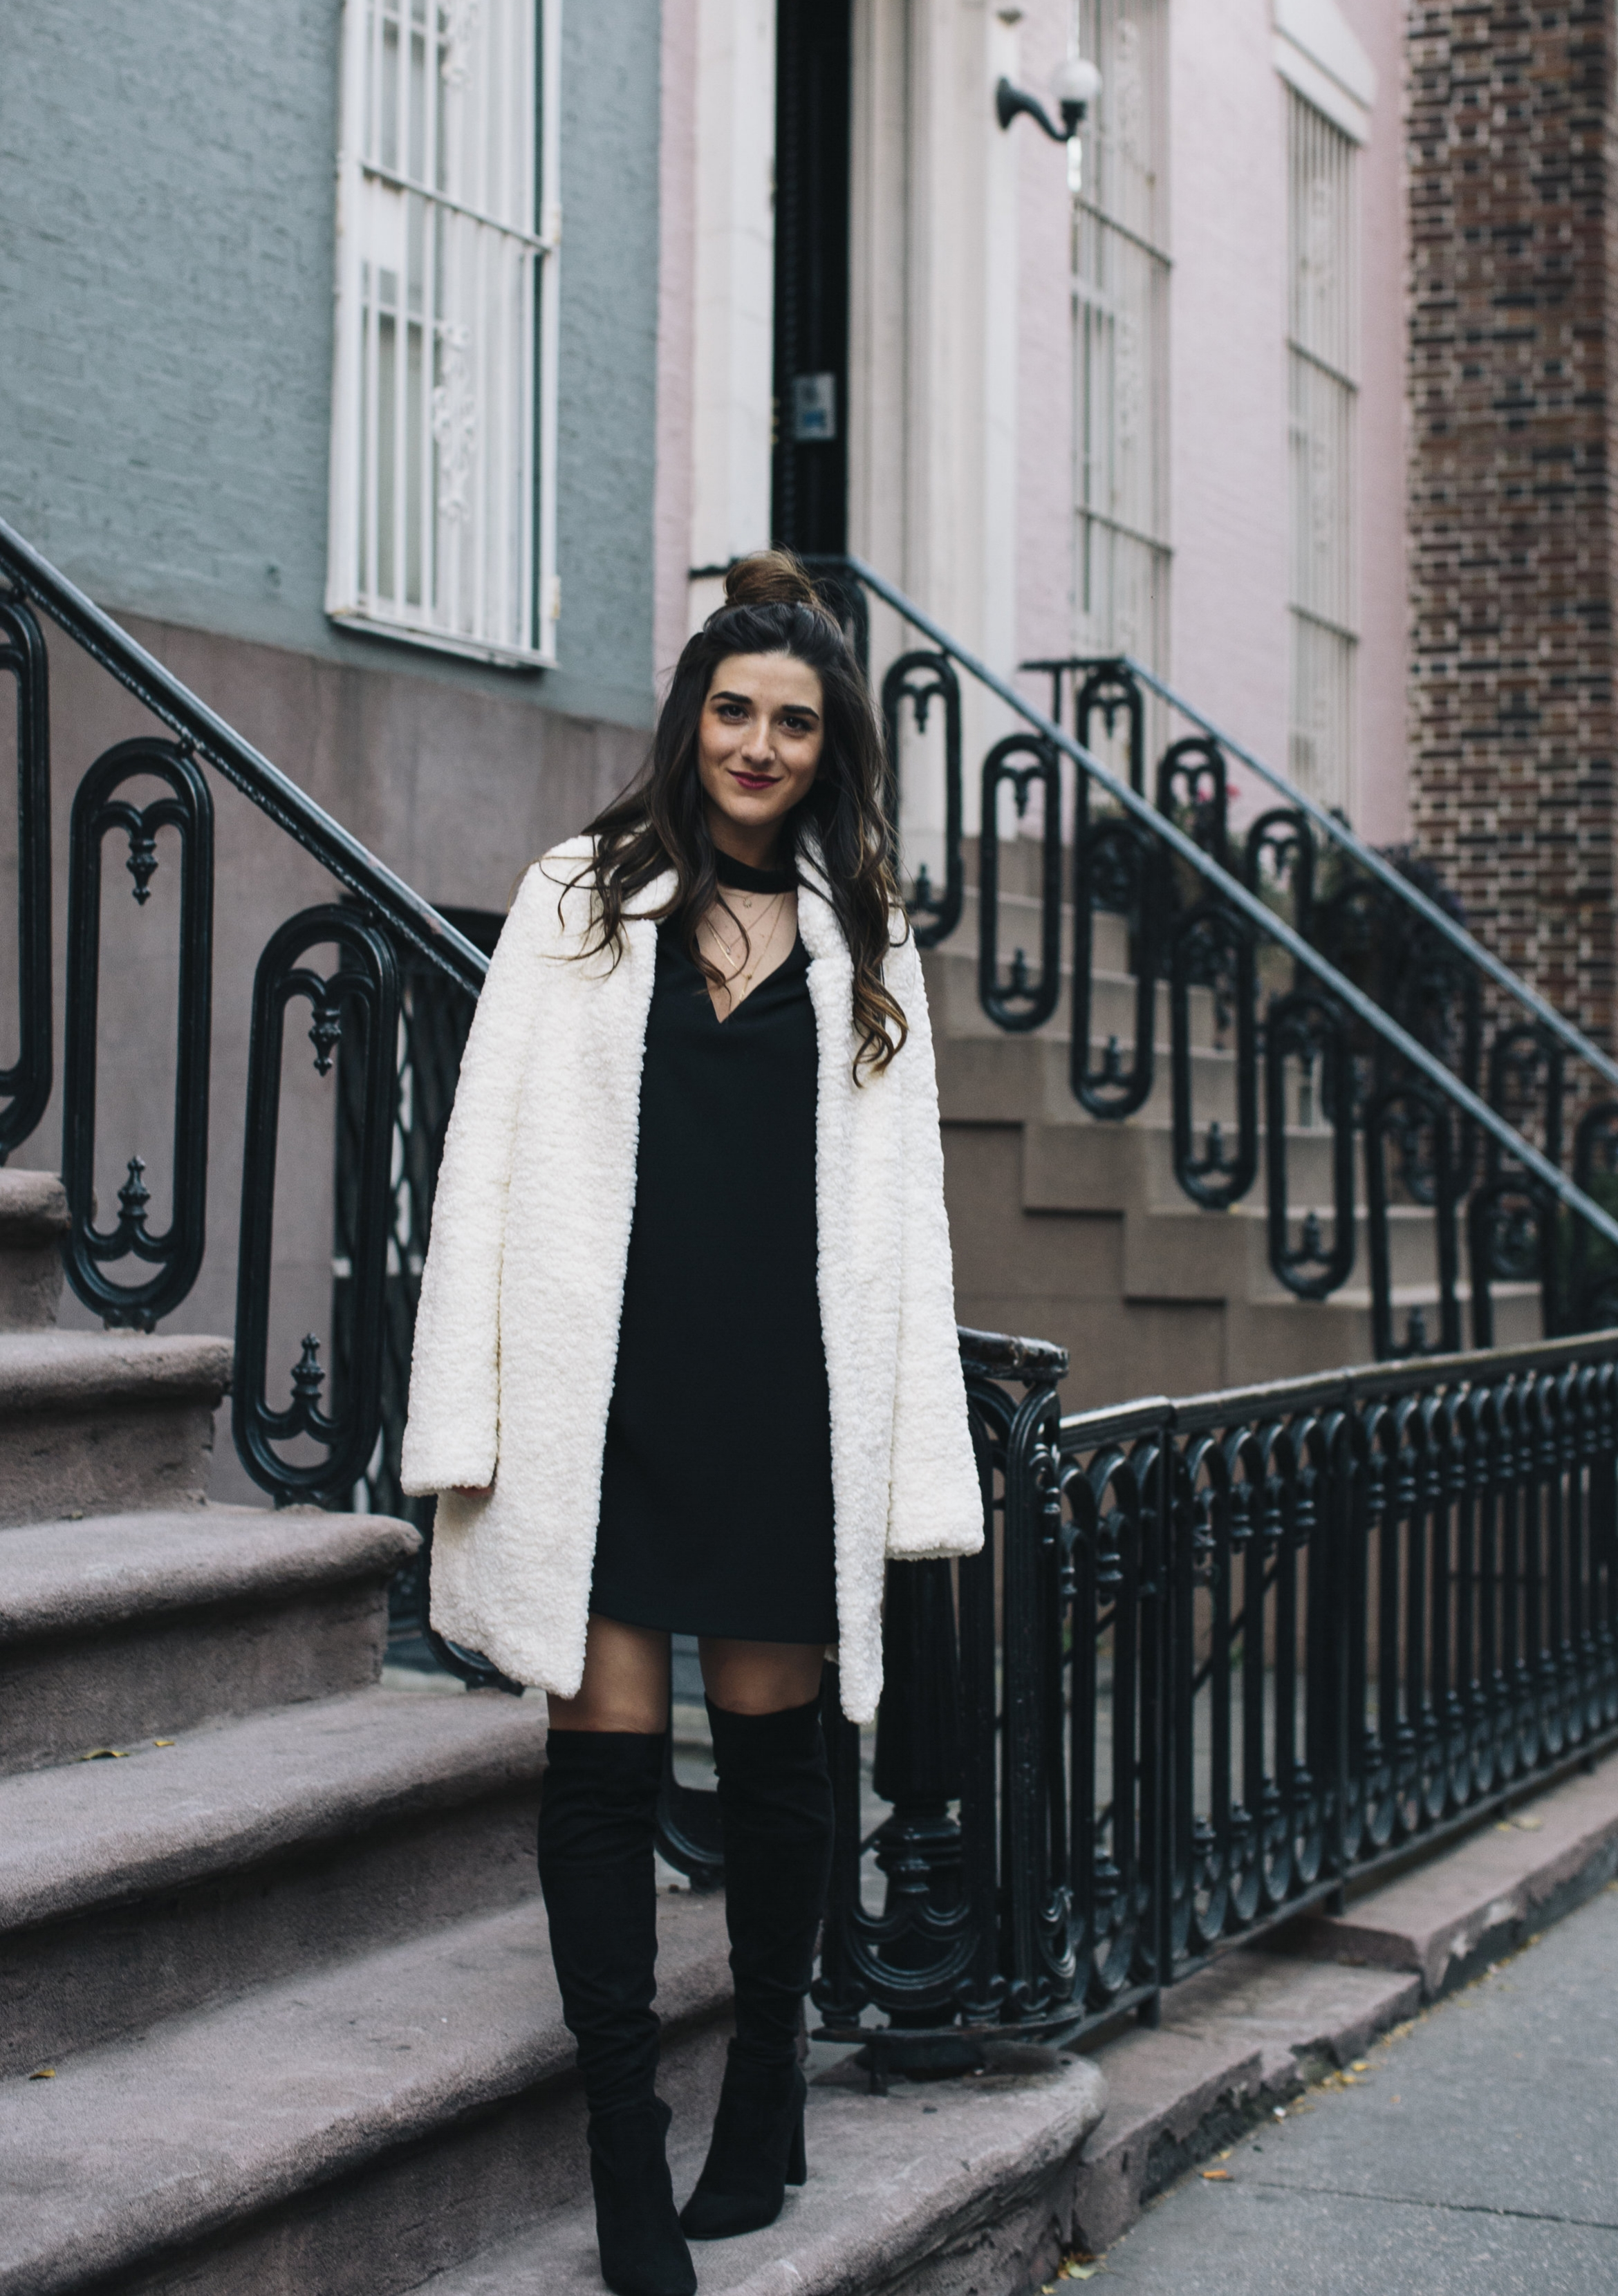 Teddy Bear Coat + OTN Boots How To Avoid Blogger Depression Louboutins & Love Fashion Blog Esther Santer NYC Street Style Blogger Outfit OOTD Trendy Ivanka Trump Nordstrom Bloomingdales Black Dress Zara Pretty Online Shopping Shoes Wear Bun Women Girl.jpg